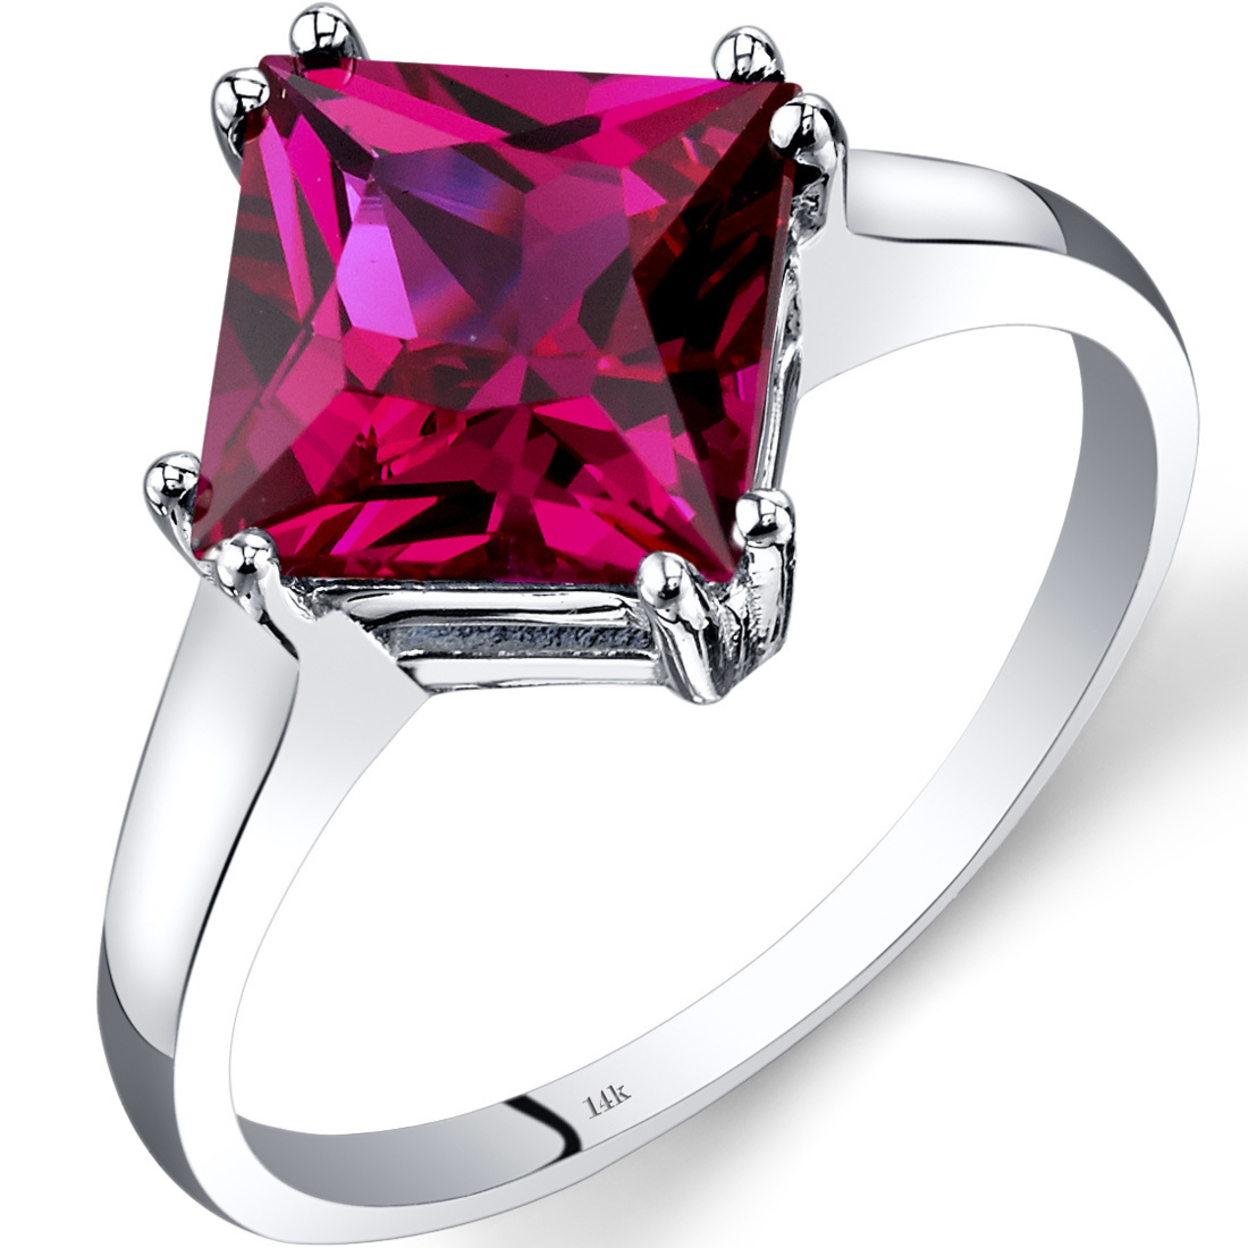 14k White Gold Created Ruby Solitaire Ring 3.25 Carat Princess Cut R62192